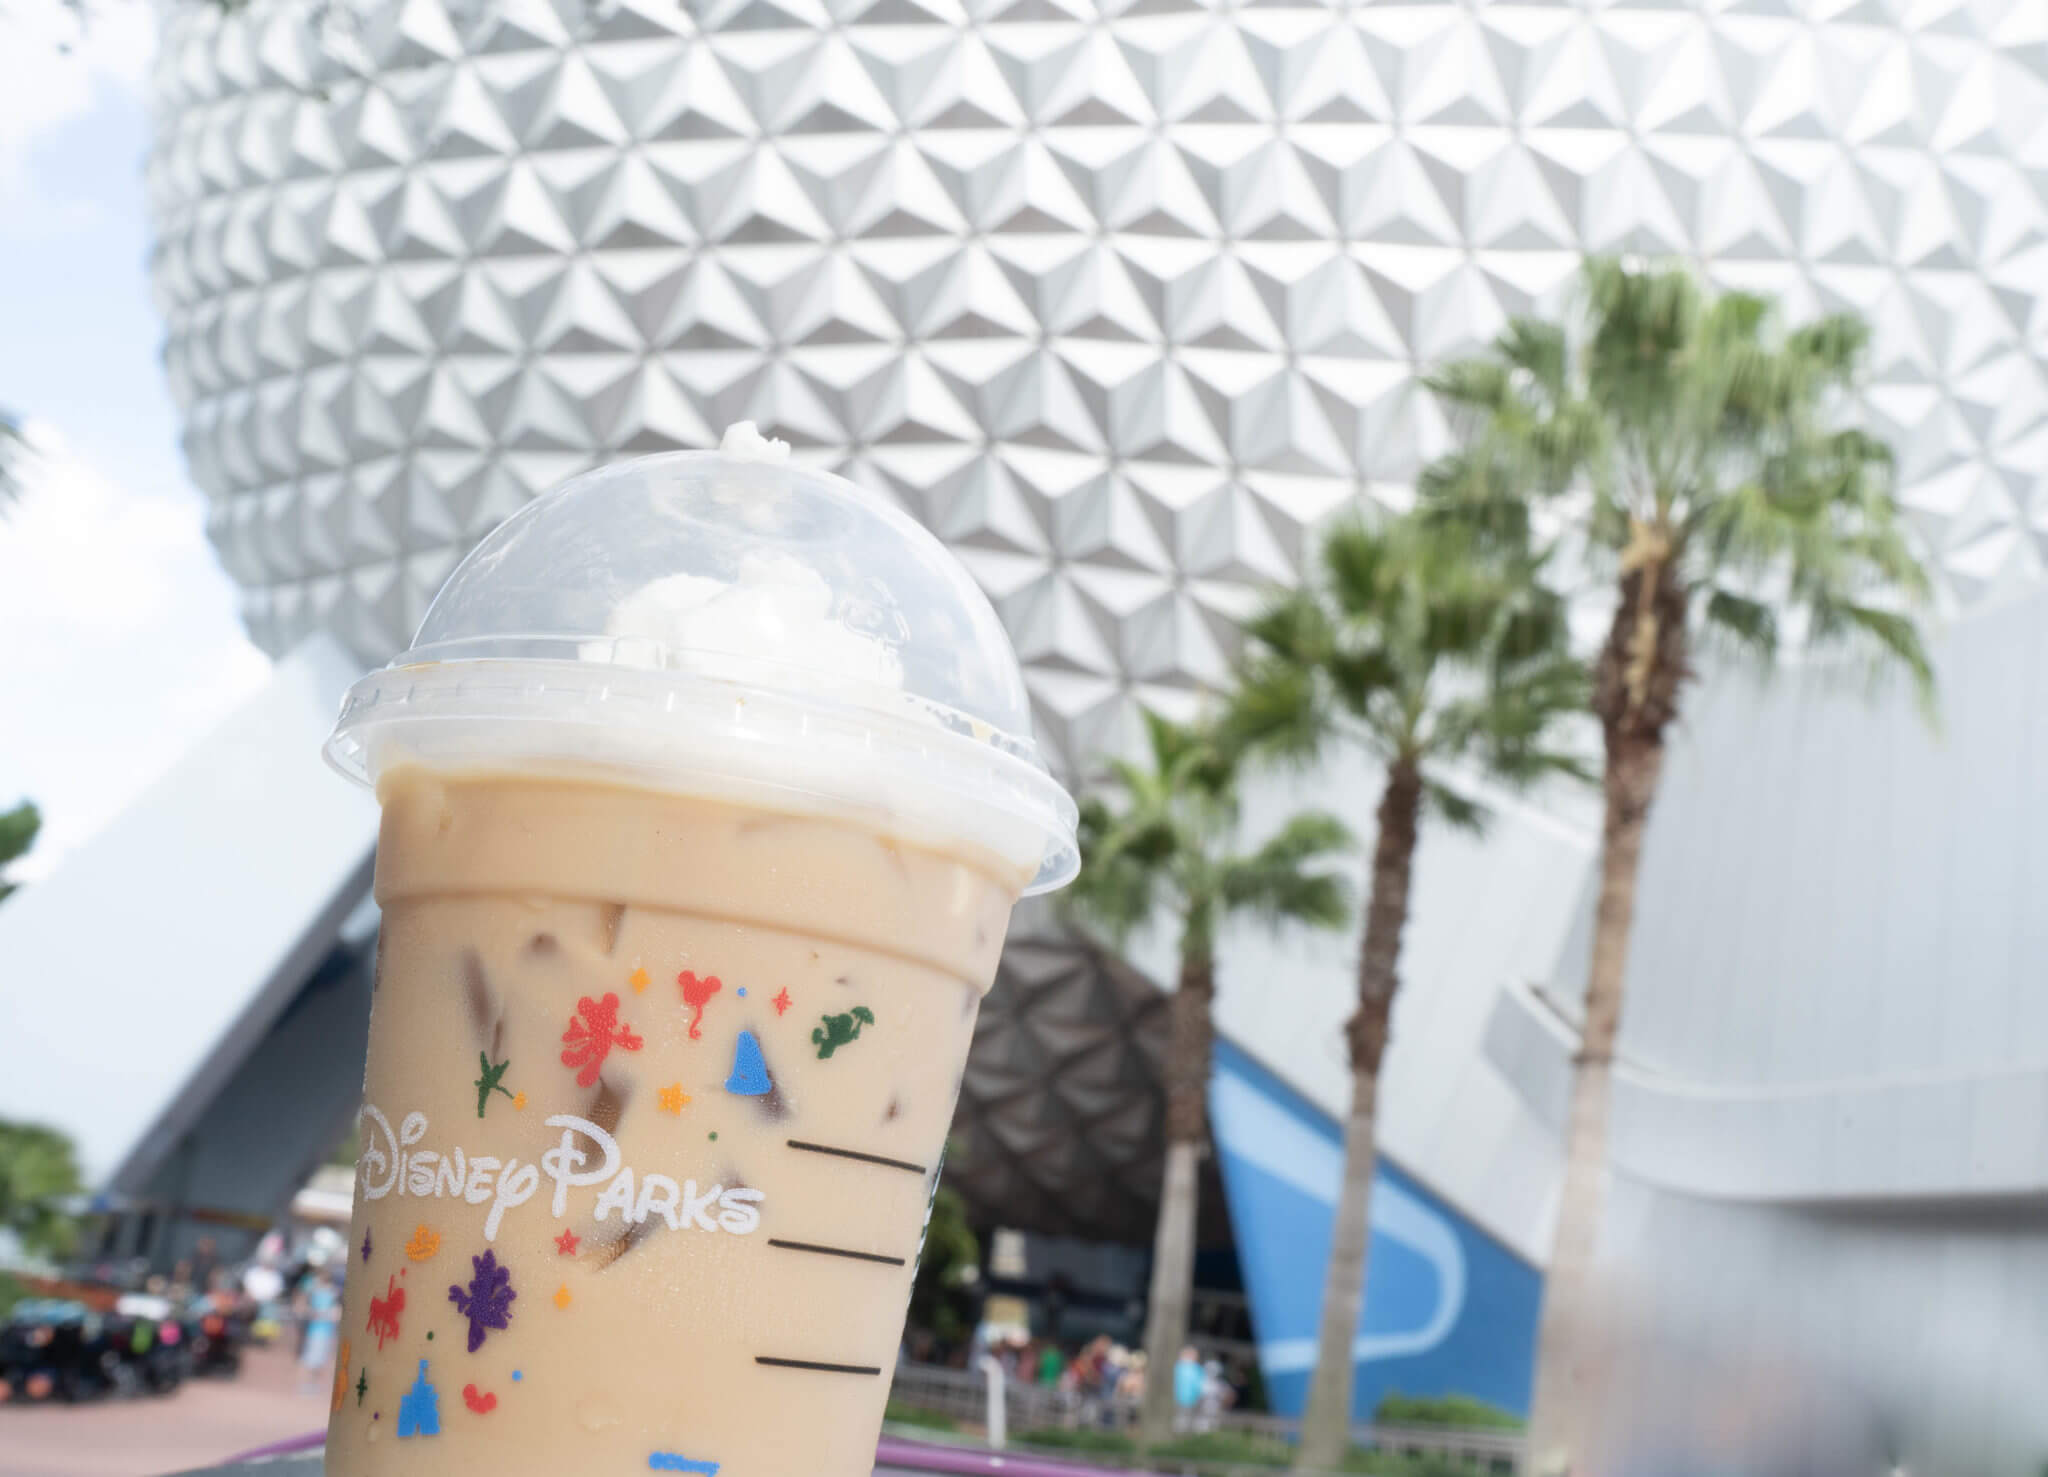 Epcot's Spaceship Earth and Starbucks Iced Coffee in Disney World